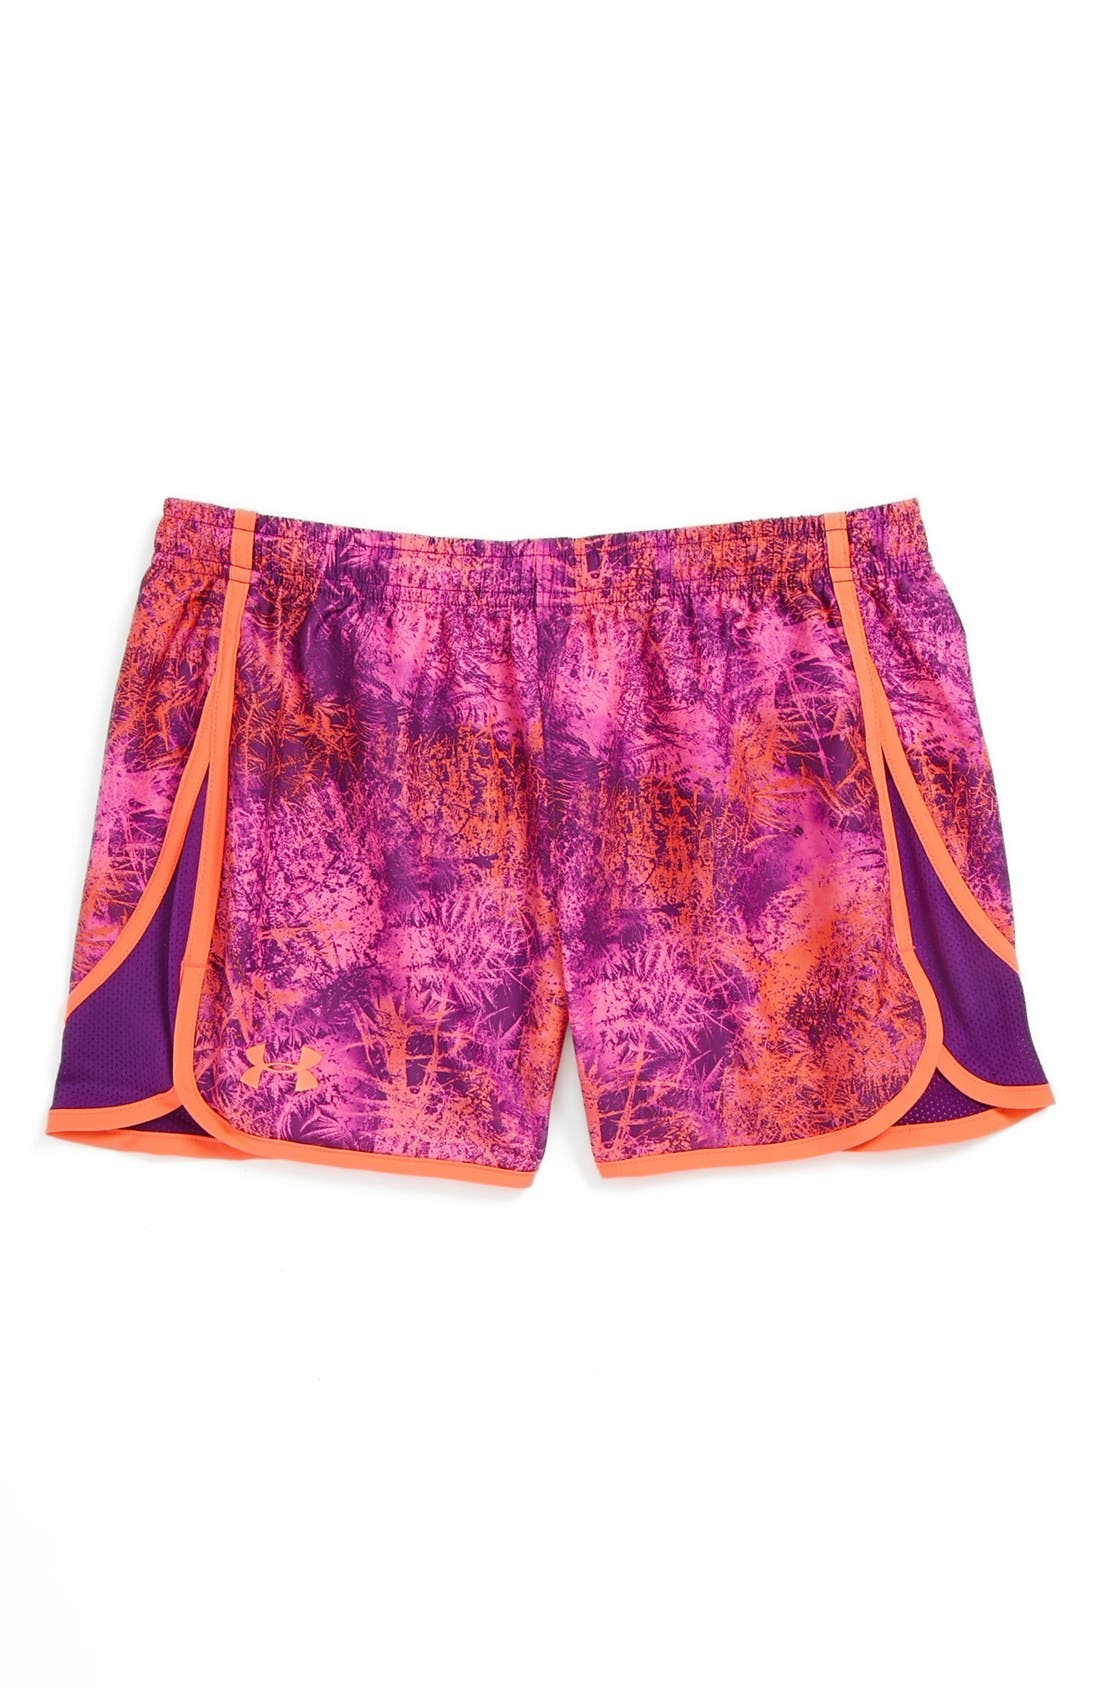 Main Image - Under Armour 'Escape' HeatGear® Print Shorts (Big Girls)